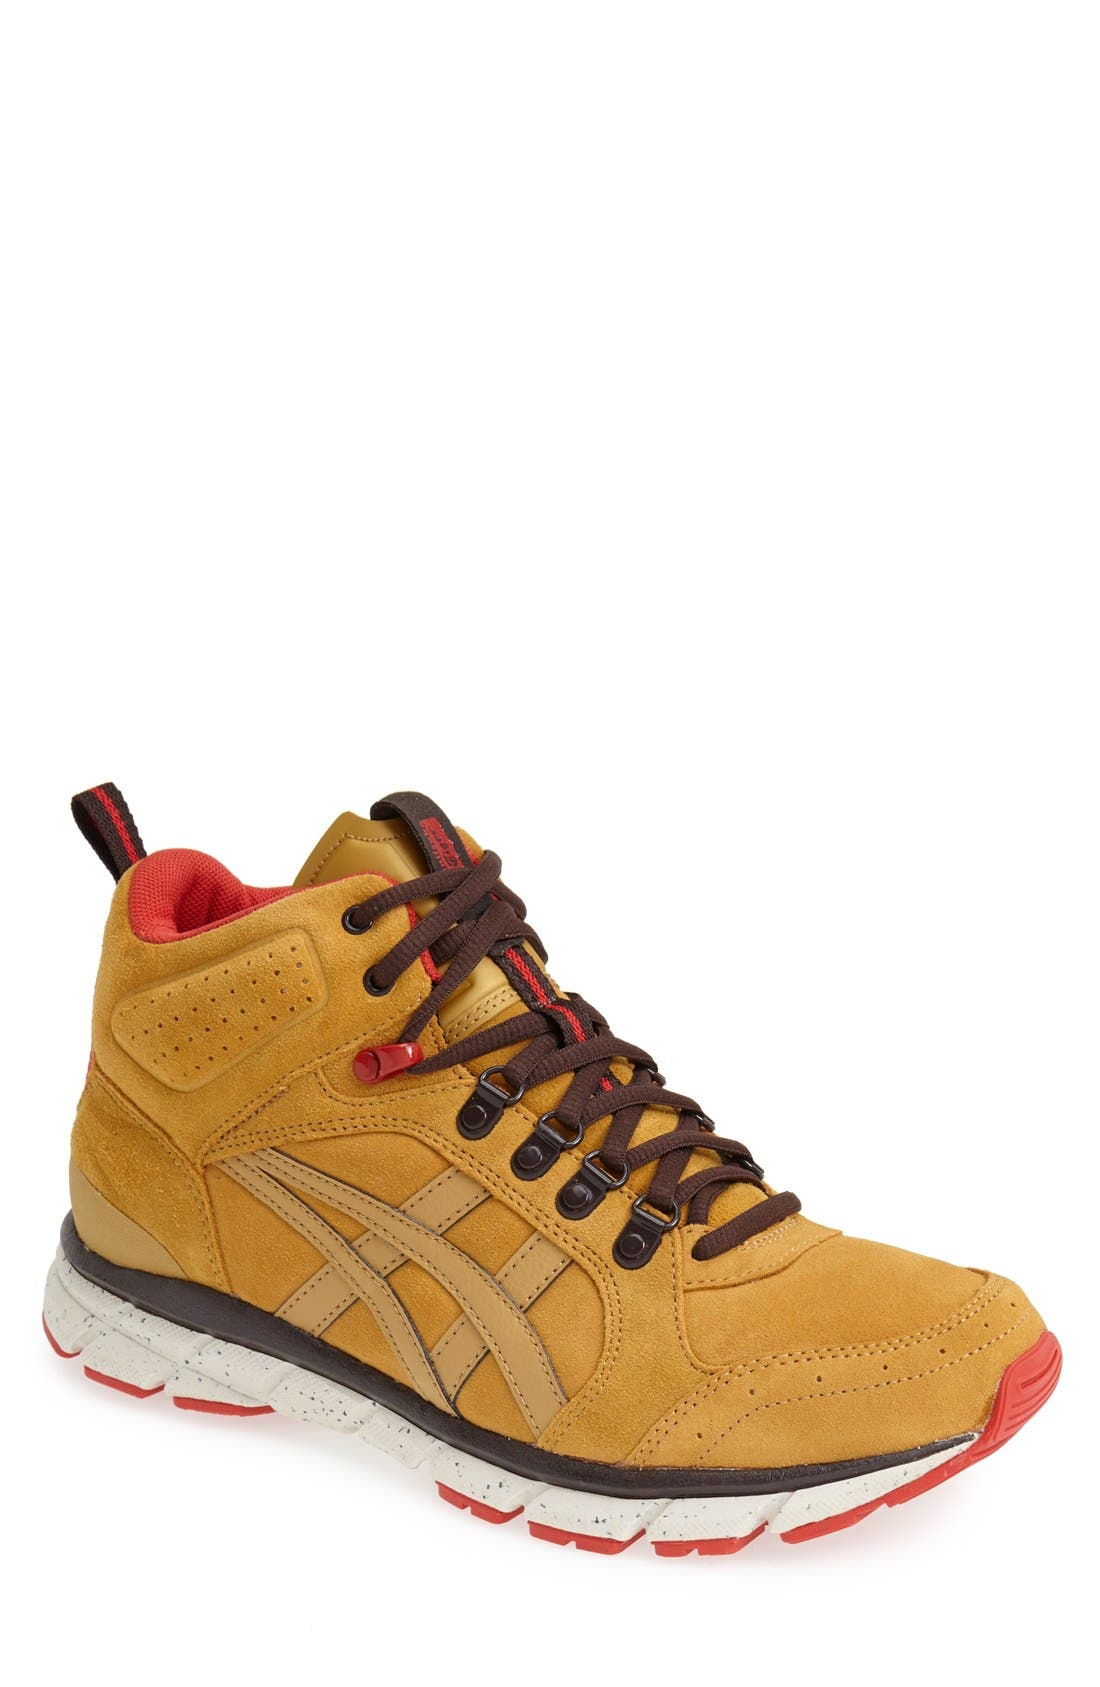 Onitsuka Tiger 'Harandia MT' Sneaker,                             Main thumbnail 1, color,                             750